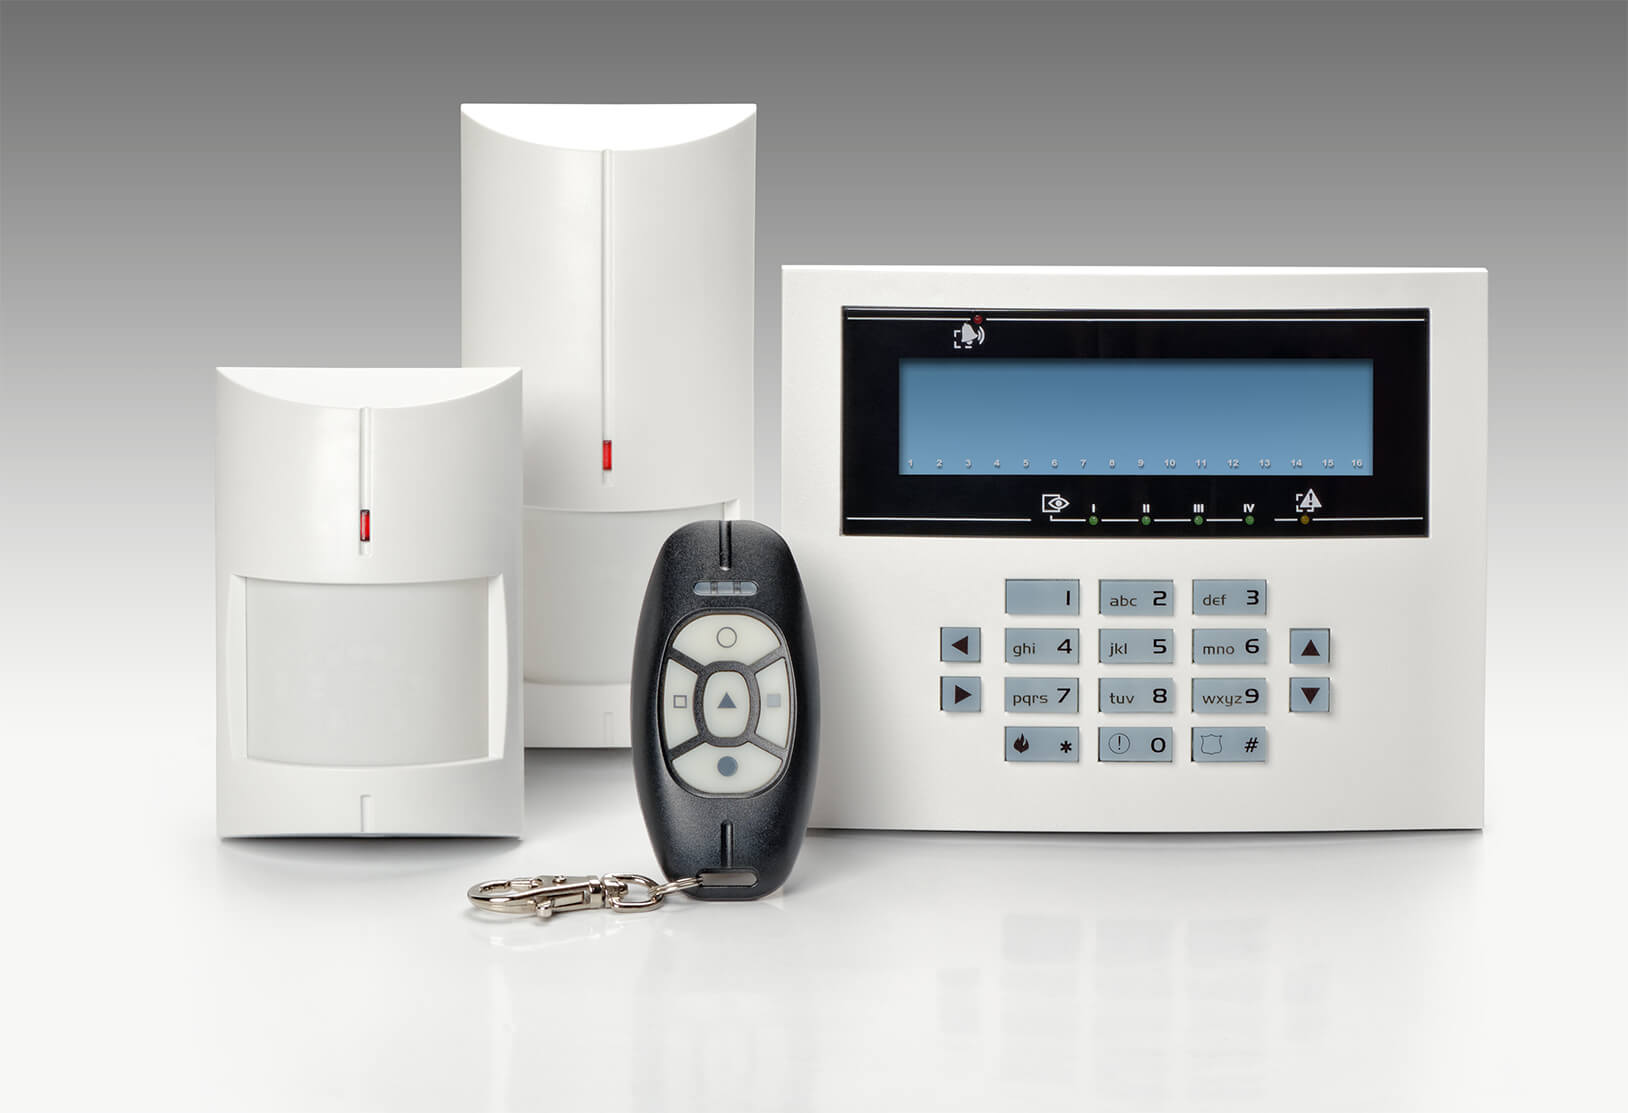 Commercial Burglar Alarms For Business in Brompton SW3  - Local Brompton SW3 burglar alarm company.Call 02078872244 - Dedicated to Safety & Security. Companies, shops and homes ..